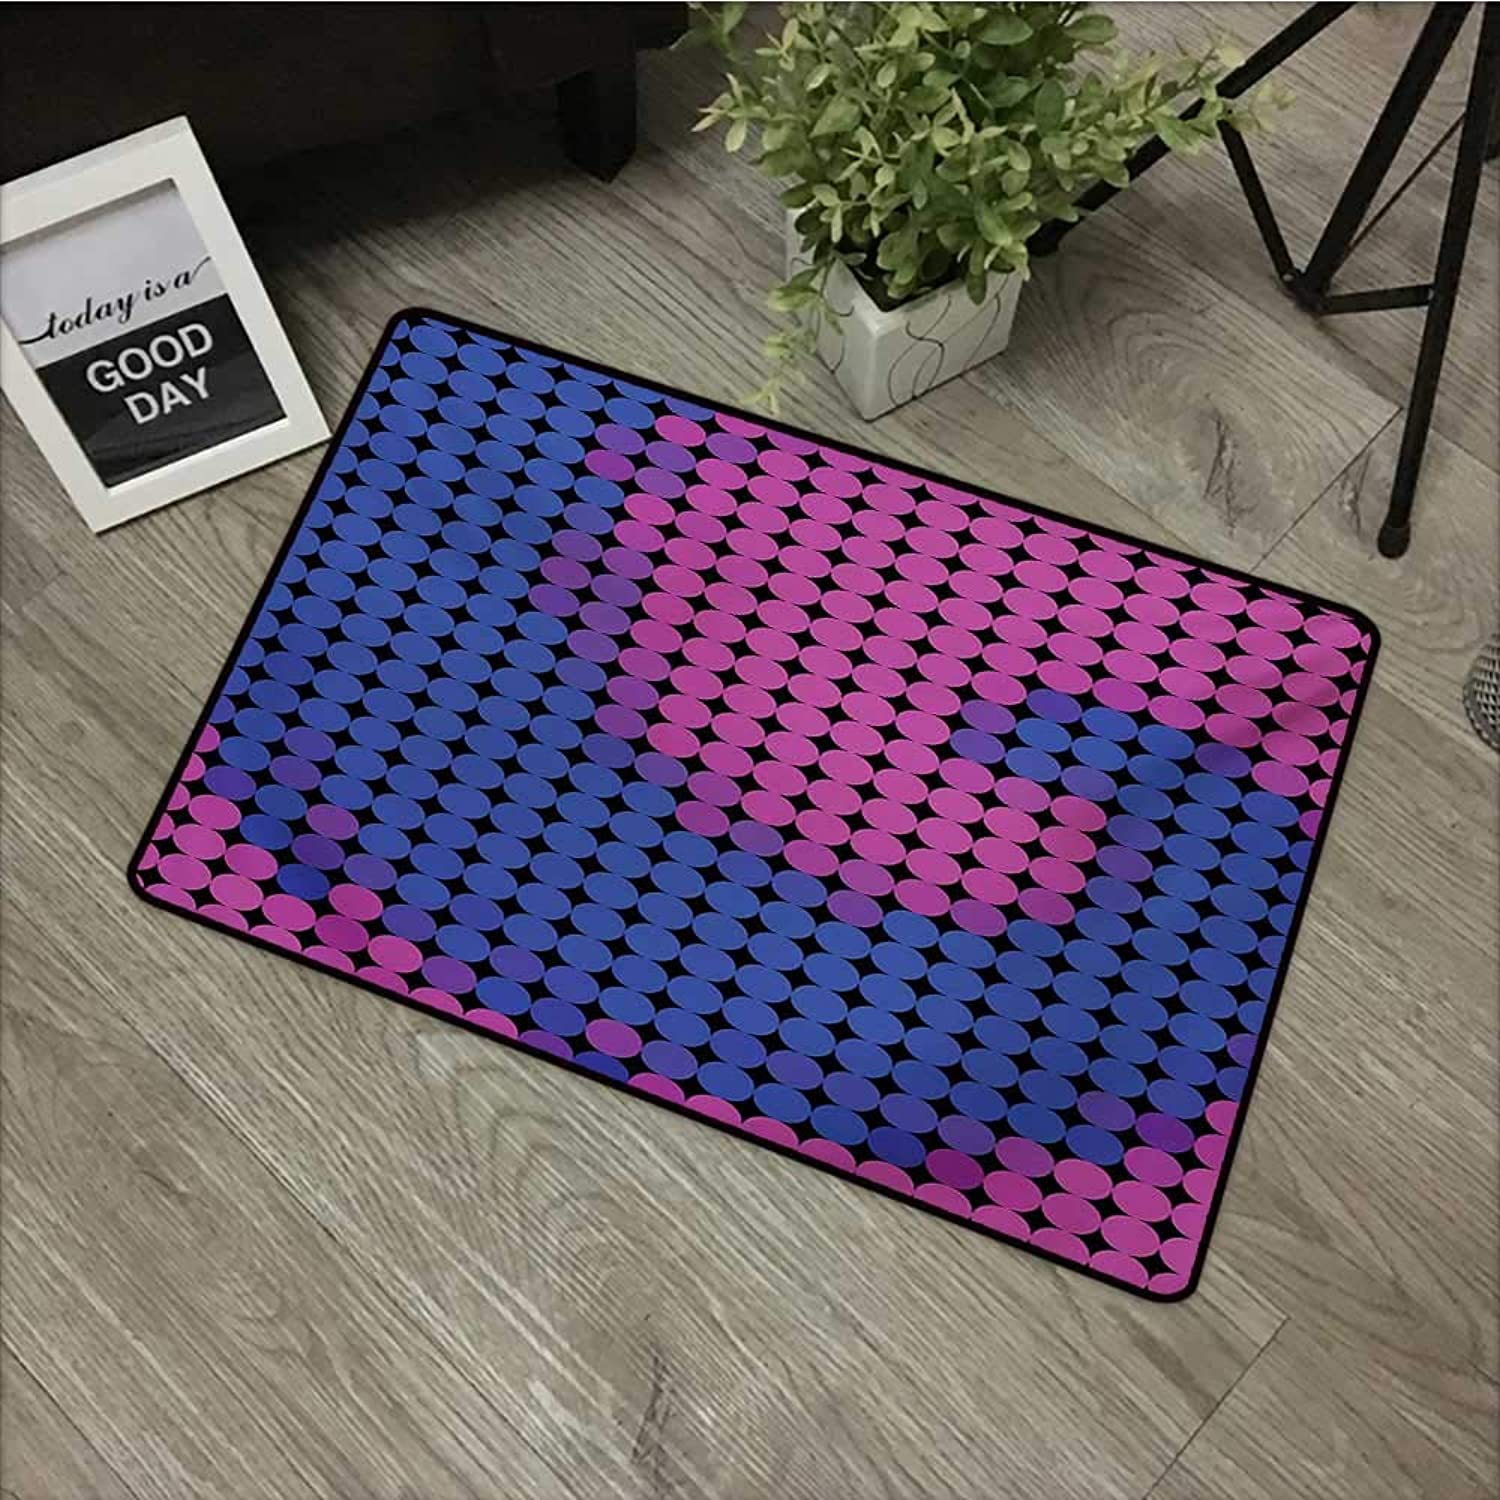 Bedroom Door mat W35 x L59 INCH Spires,Spiral Background with Pixel Dotted Flat Design Odd Gradient Artistic Style Print,Pink bluee Non-Slip, with Non-Slip Backing,Non-Slip Door Mat Carpet